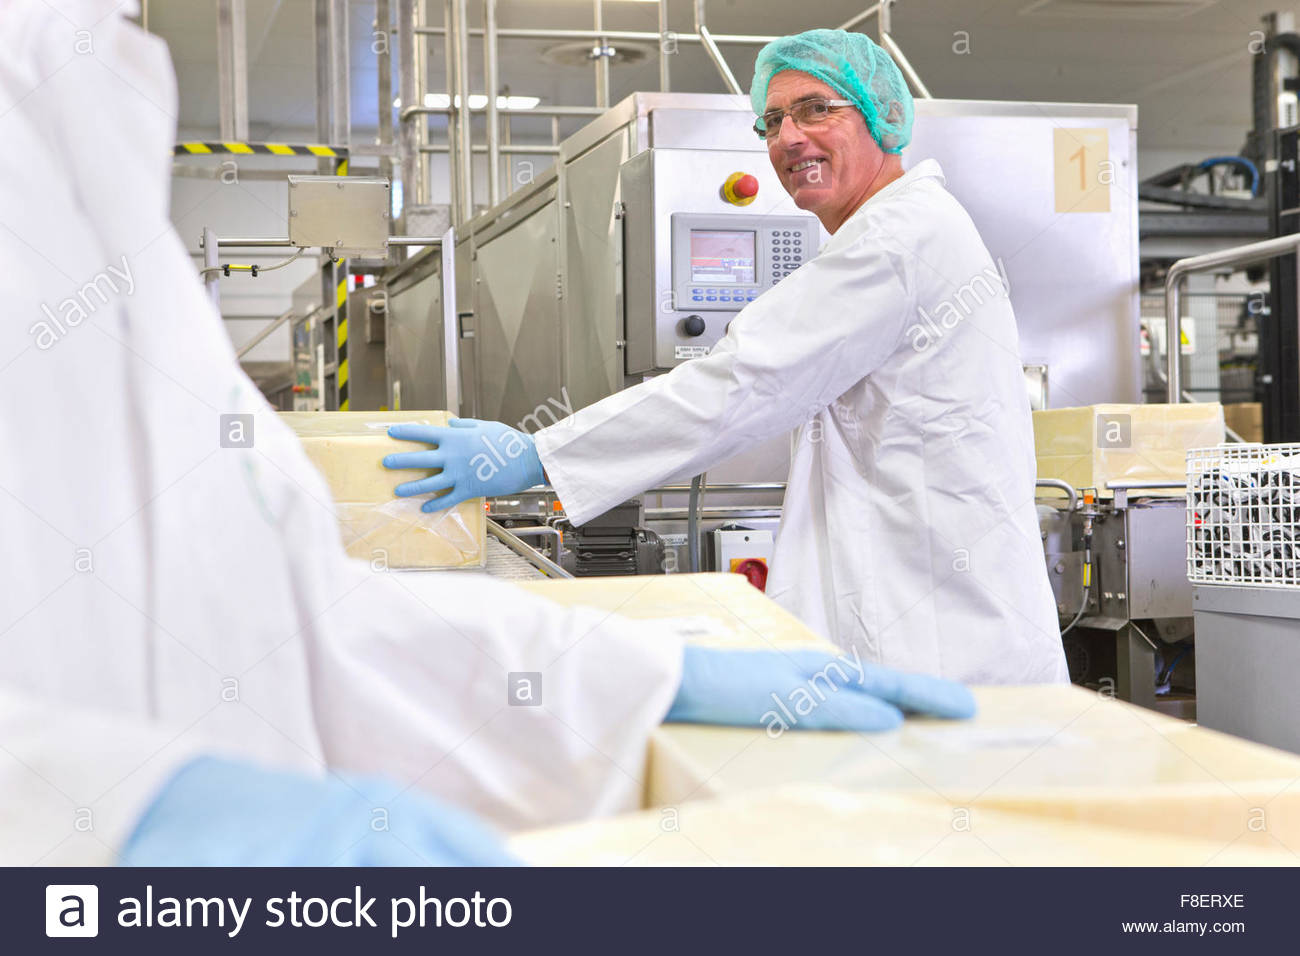 Smiling worker handling large blocks of cheese at production line in processing plant - Stock Image